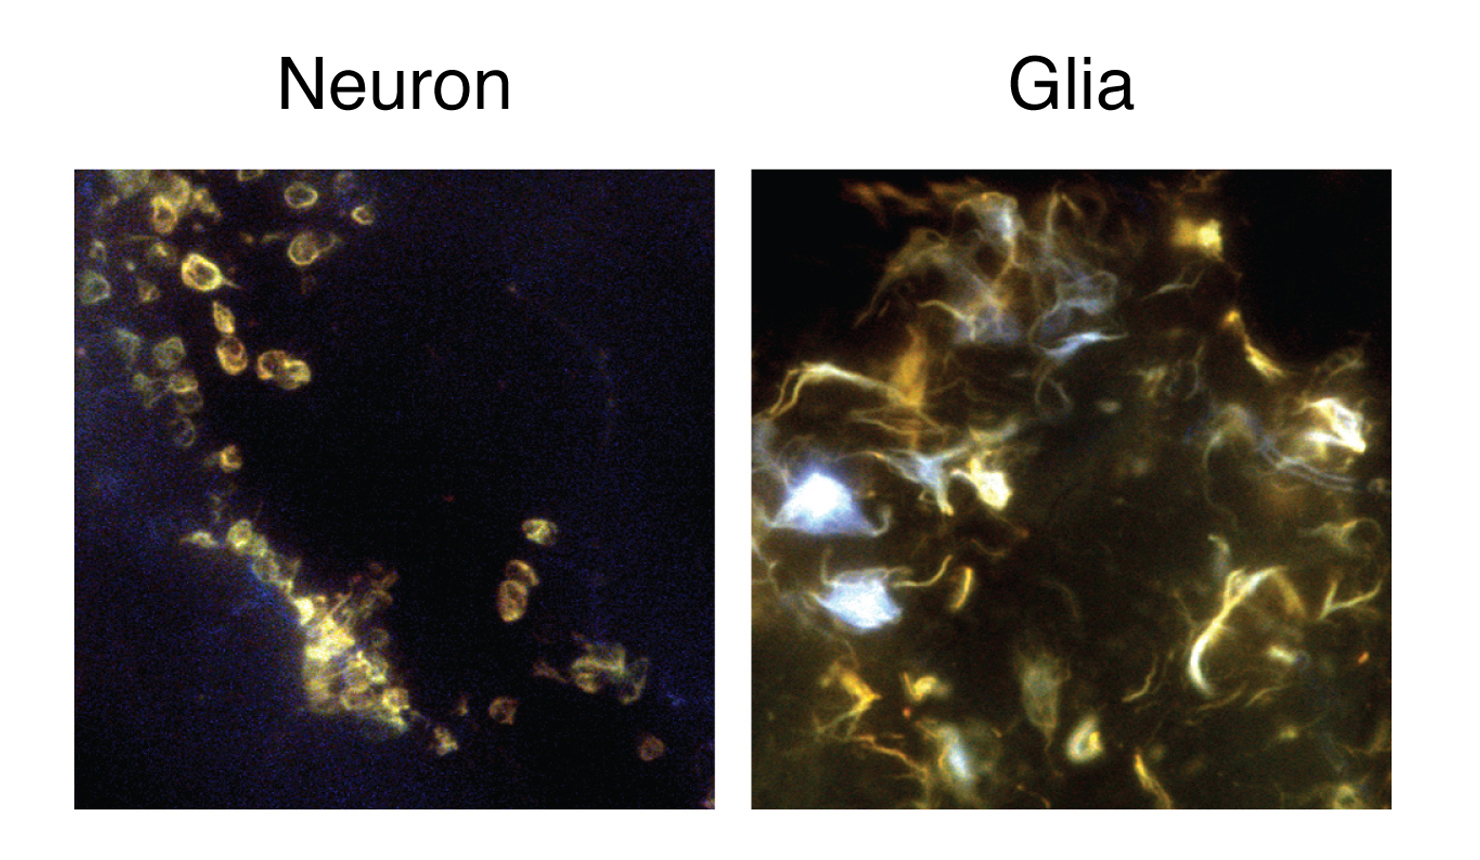 microscopy image of amyloid plaques in yellow and blue